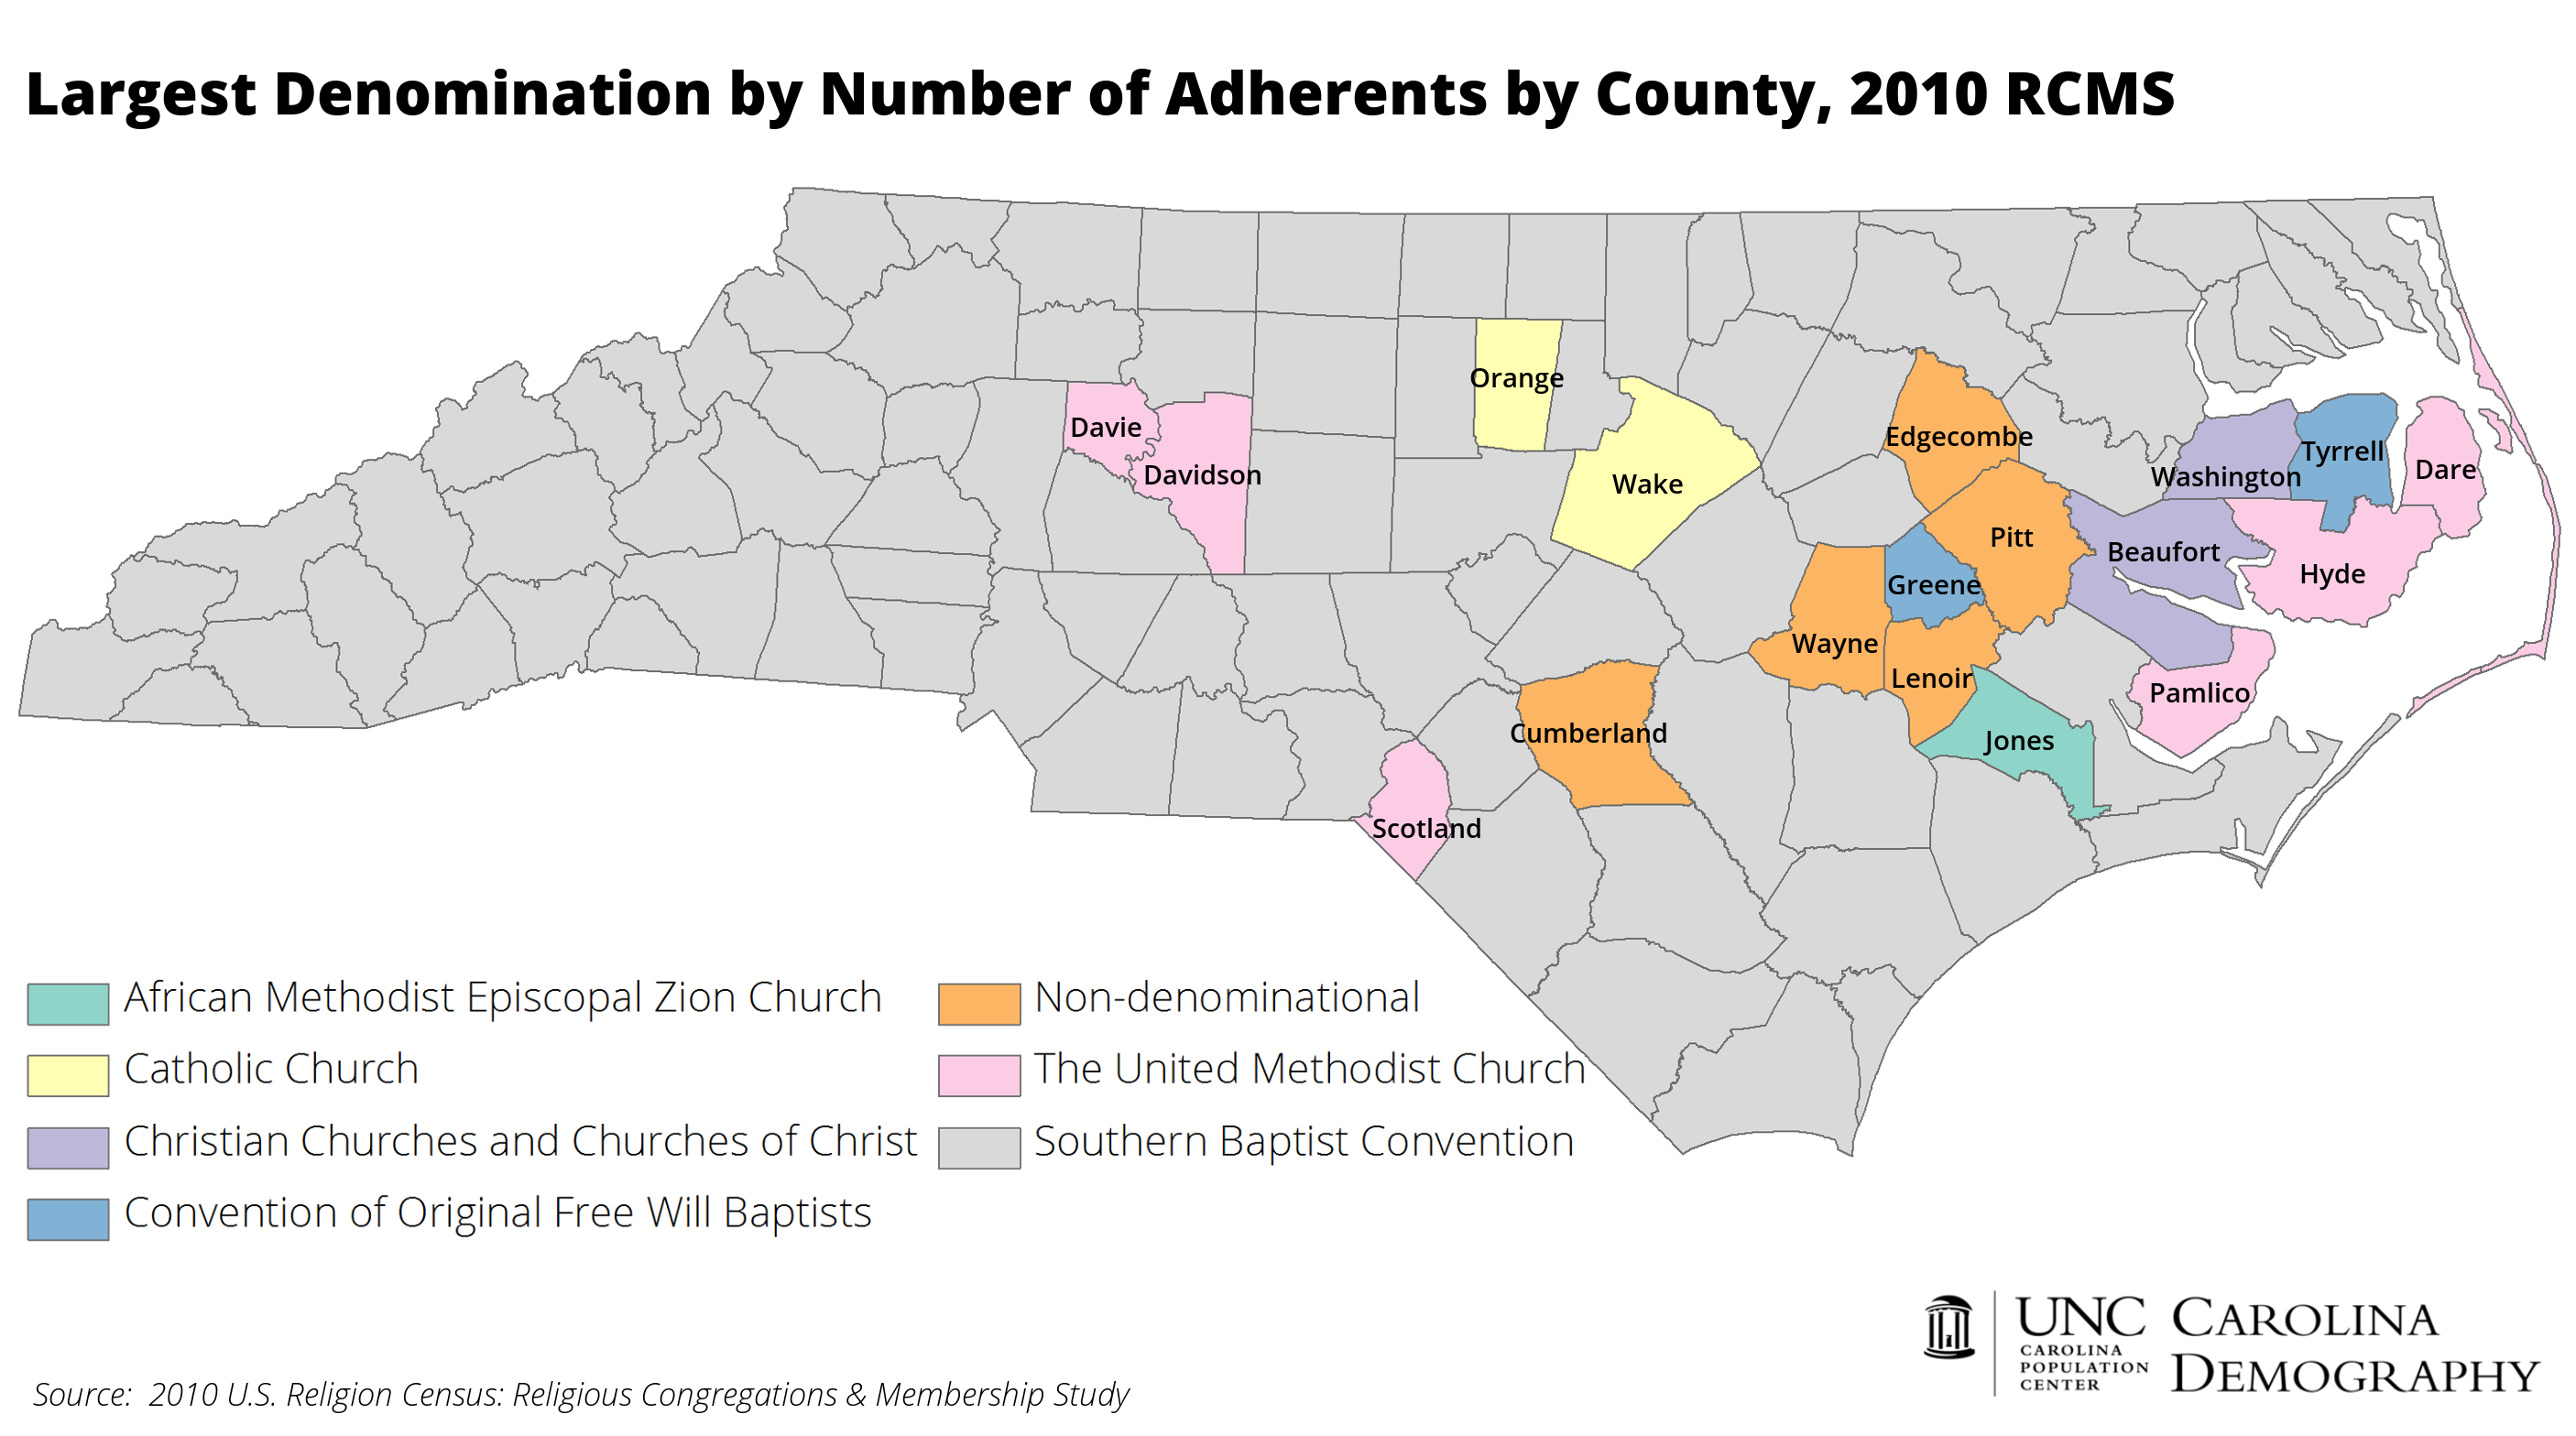 NC_Religious_Adherents_CD_countyname